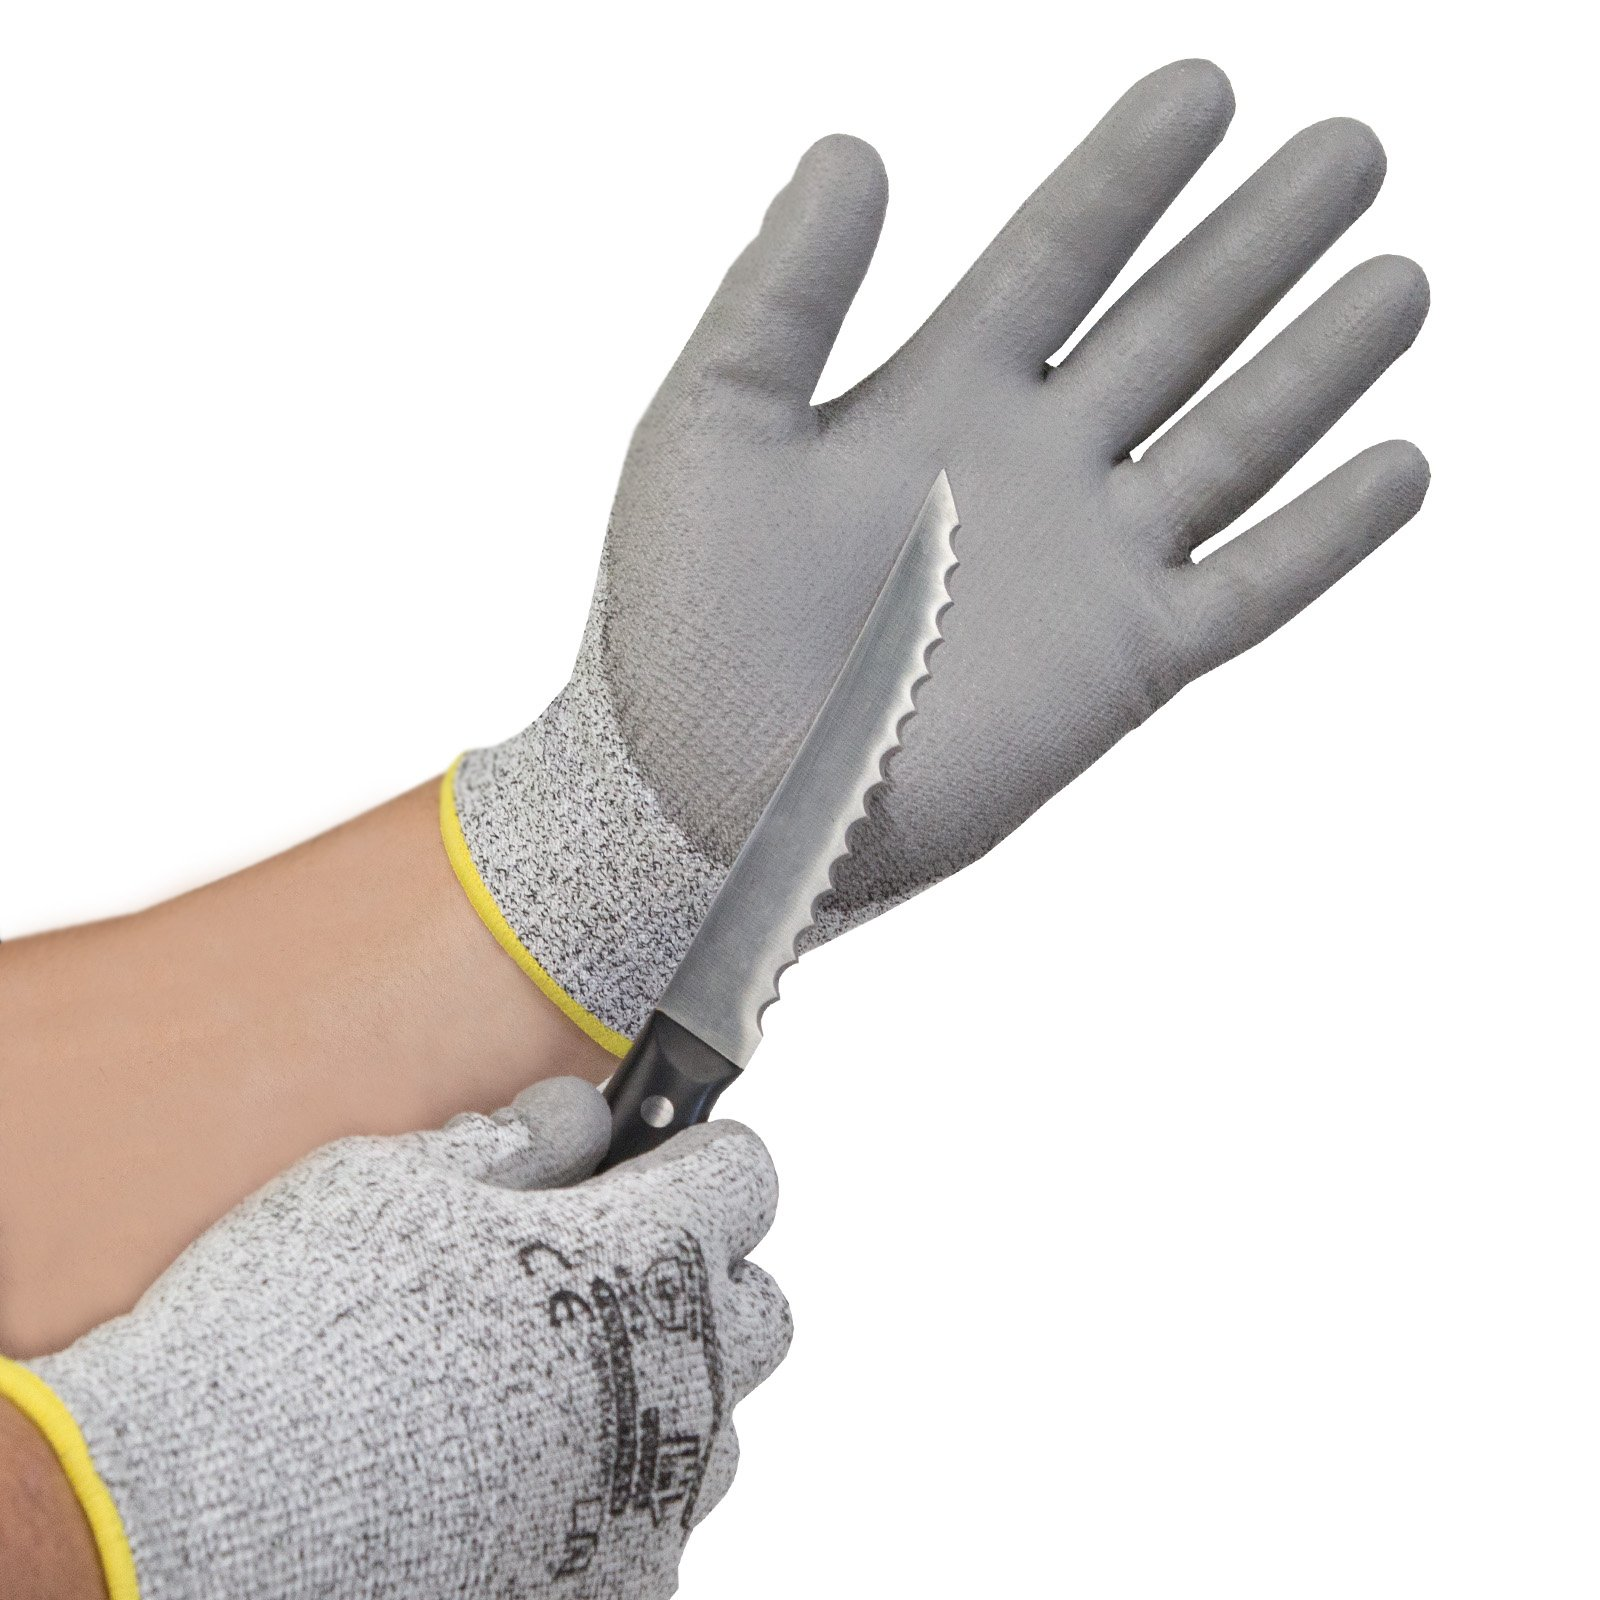 JORESTECH Palm Dipped Polyurethane Coated Seamless Knit Work Gloves PPE Hand Protection Blade Cut Resistance Level 5 (Extra Large) Pack of 12 by JORESTECH  (Image #4)